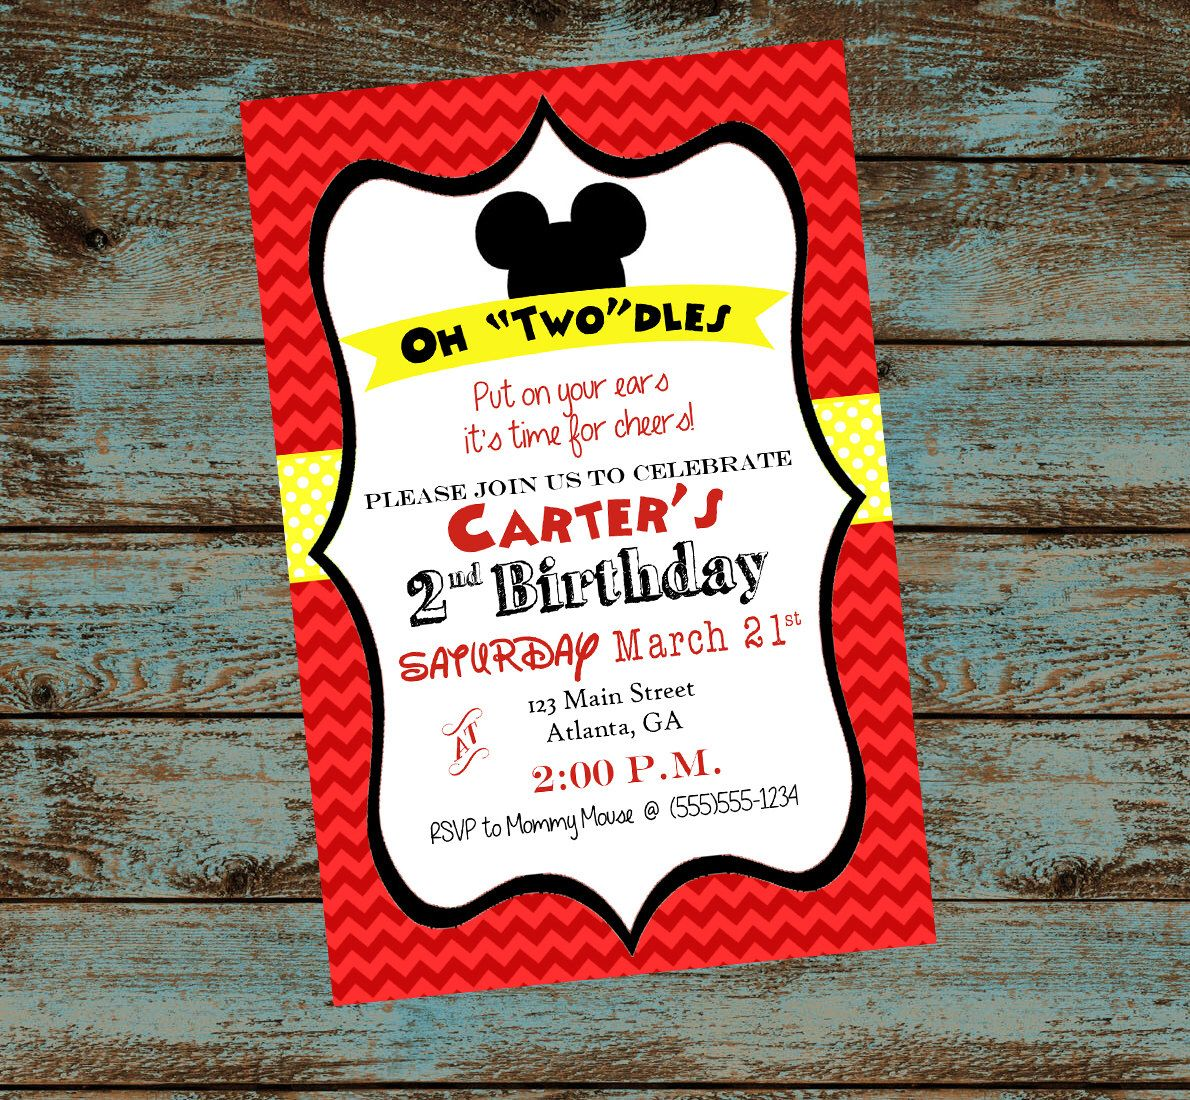 Mickey Mouse 2nd Birthday Party Invitation, Oh Twodles! Red Chevron ...